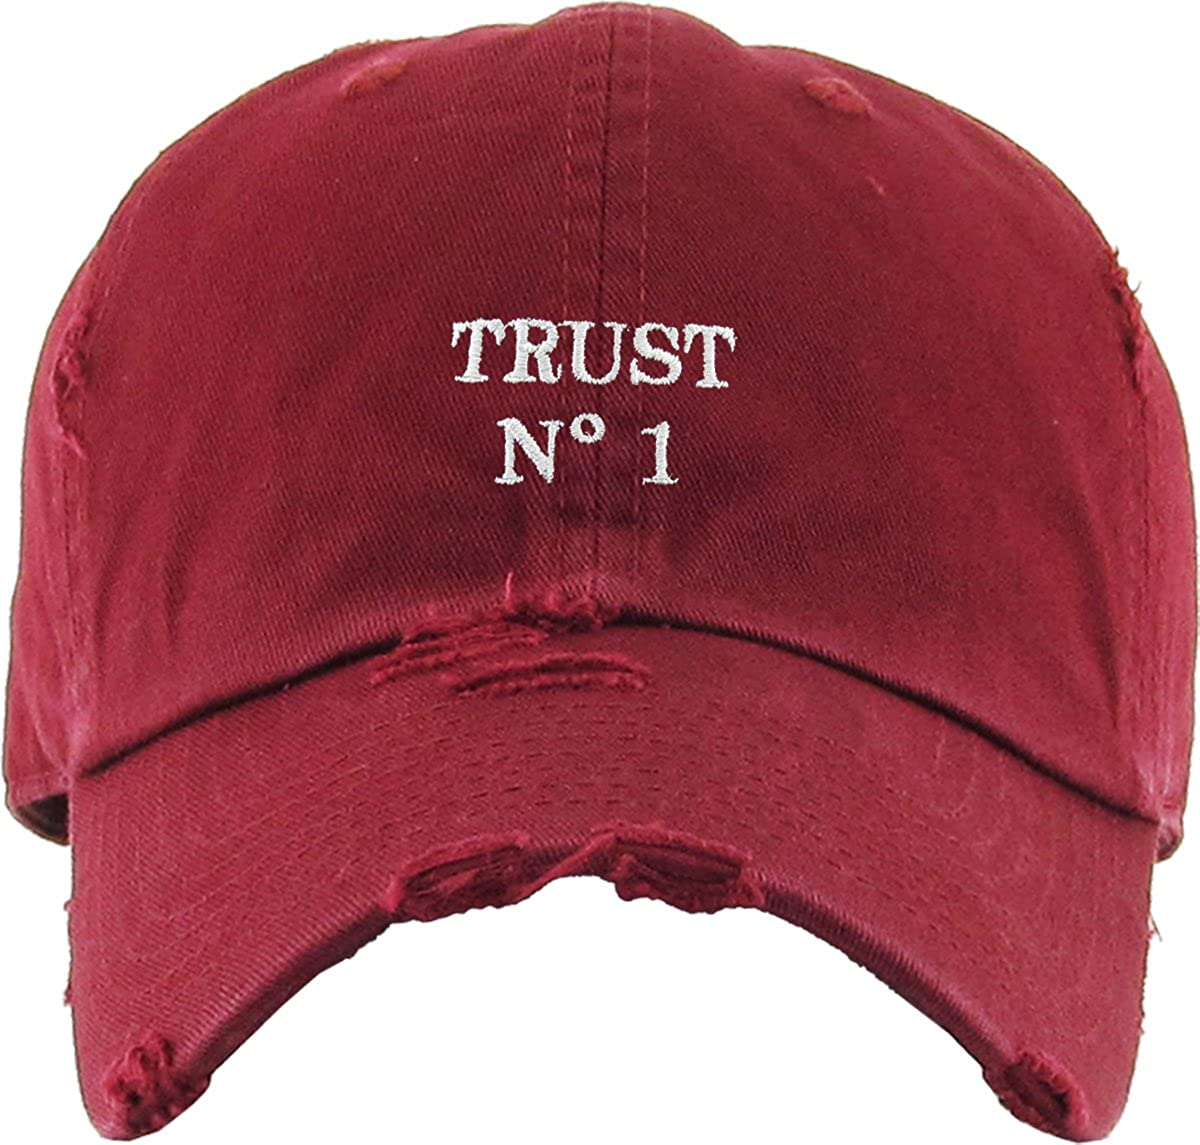 f89acd321aad4 Amazon.com  KBSV-055 BUR Trust No1 Vintage Distressed Dad Hat Baseball Cap  Polo Style  Sports   Outdoors